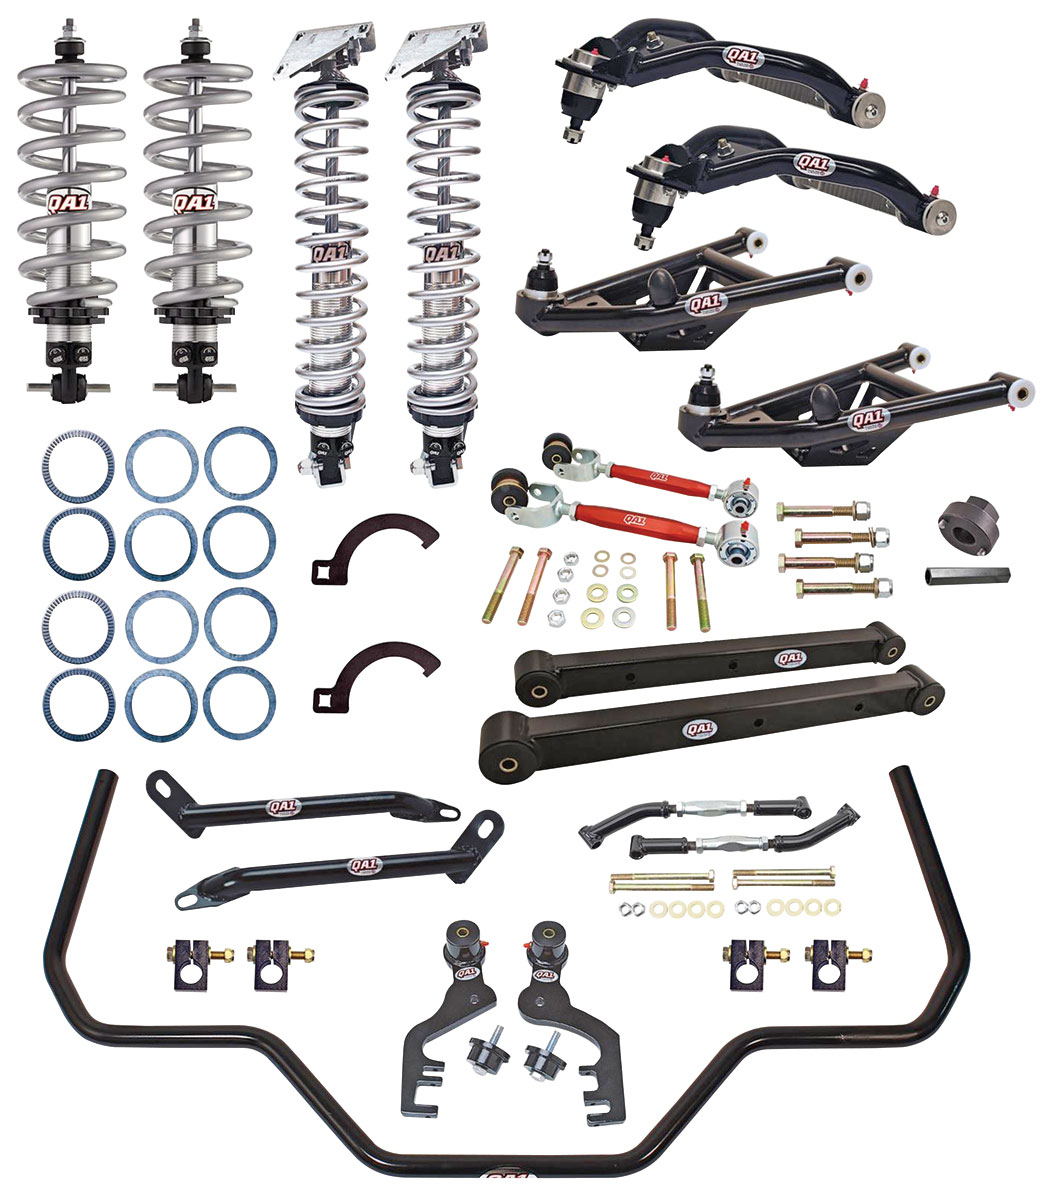 Photo of Drag Race Suspension Kits, A-Body W/Shocks level 2